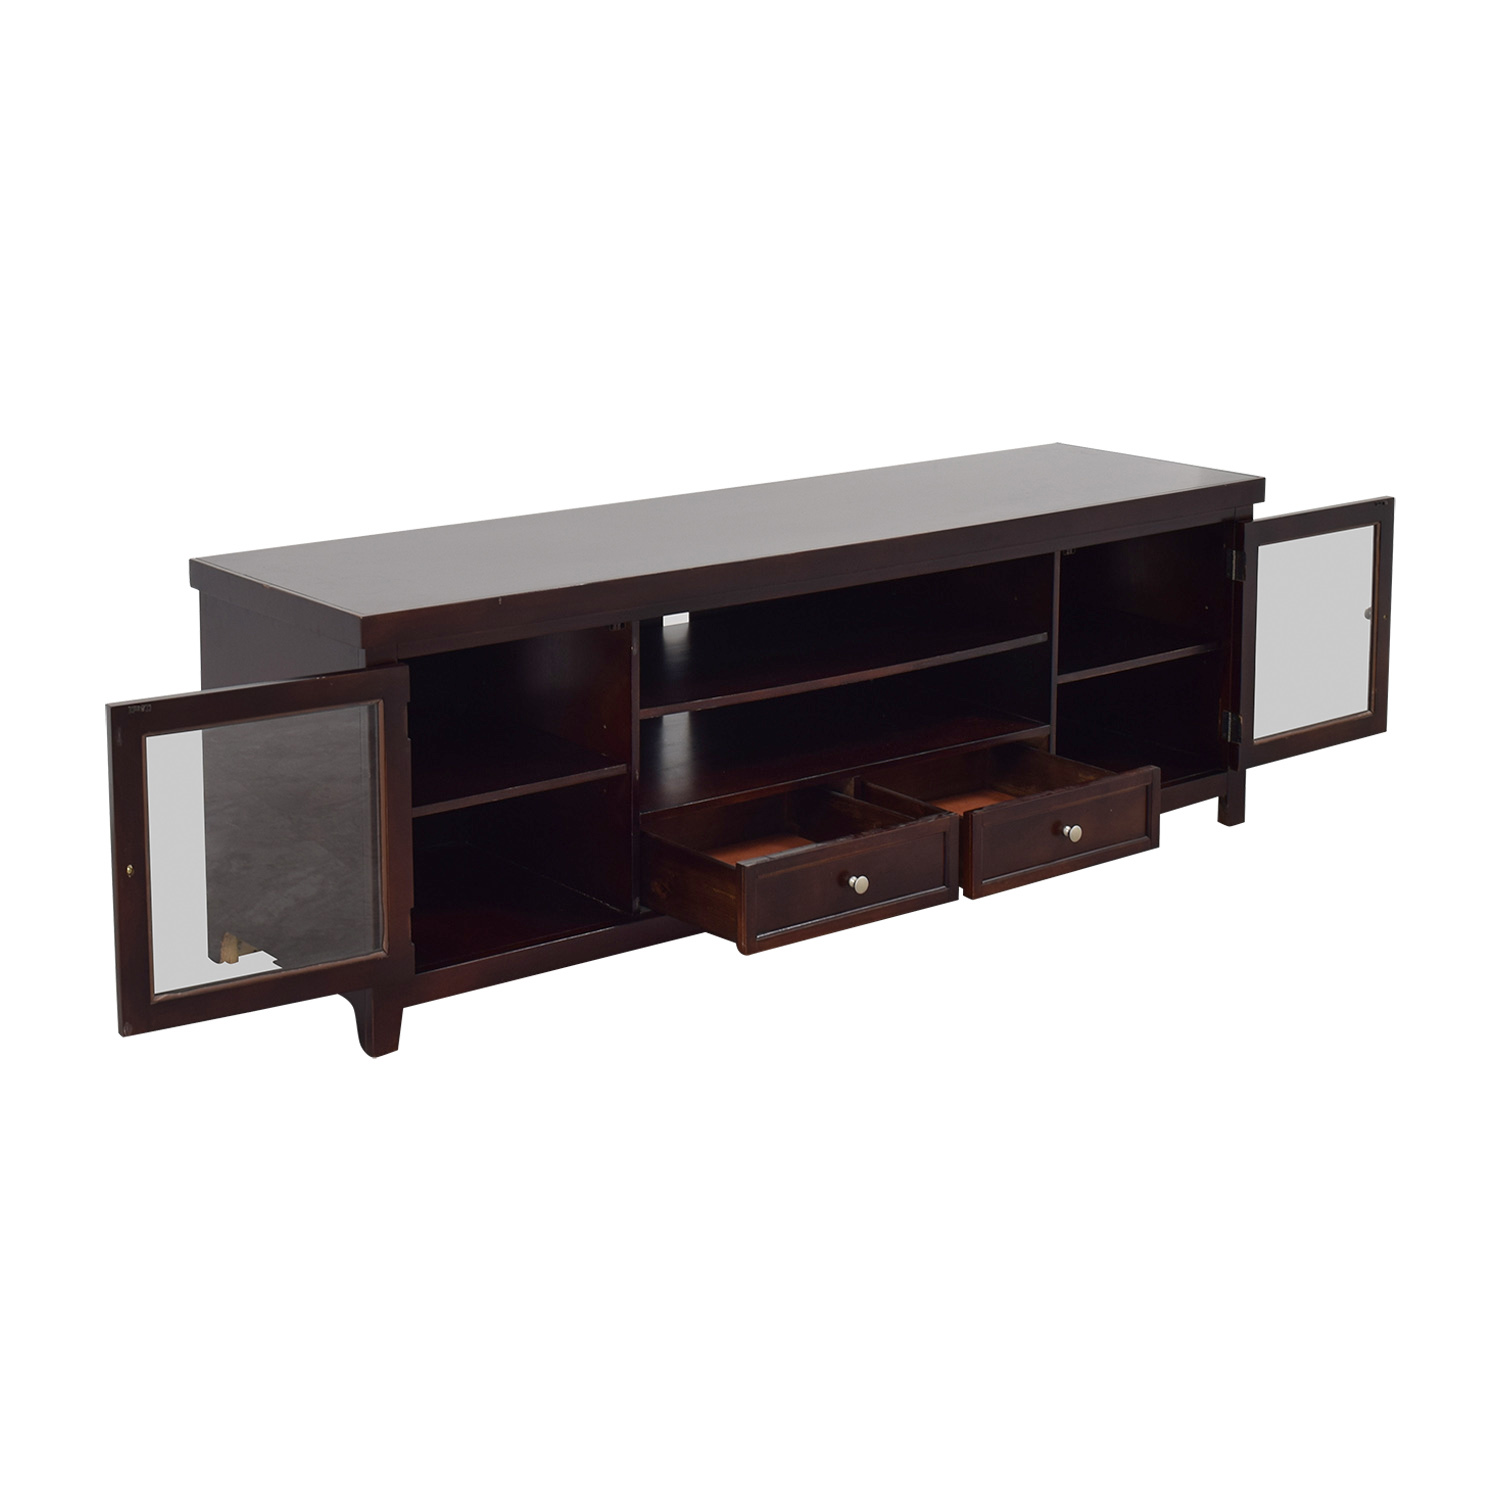 90 off living spaces living spaces wood and glass tv stand storage. Black Bedroom Furniture Sets. Home Design Ideas